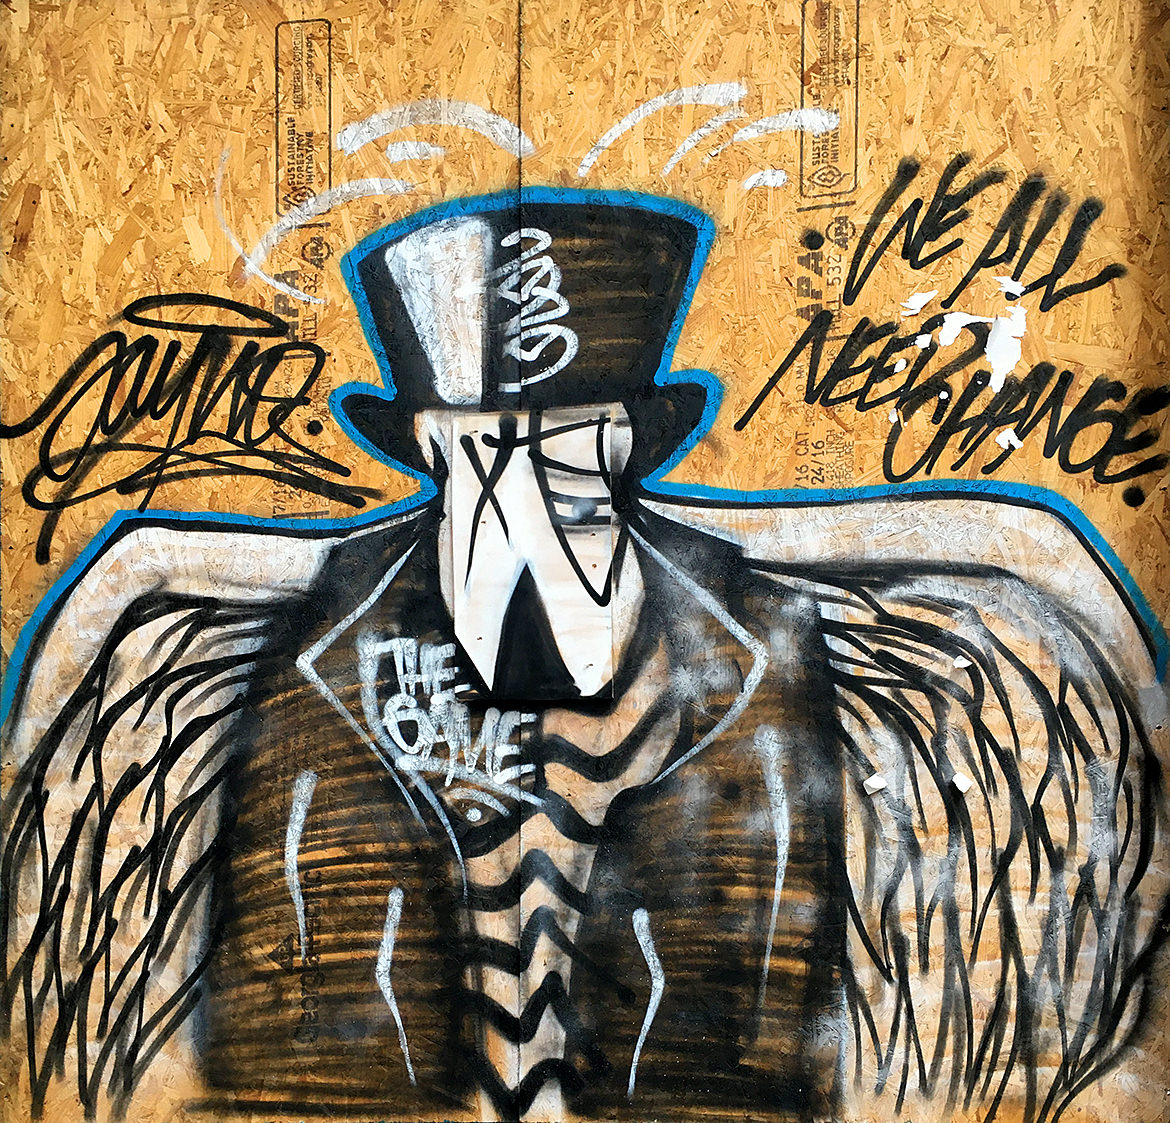 A spray paint cartoon bird wearing a black suit jacket, top hat and striped shirt with large white wings.